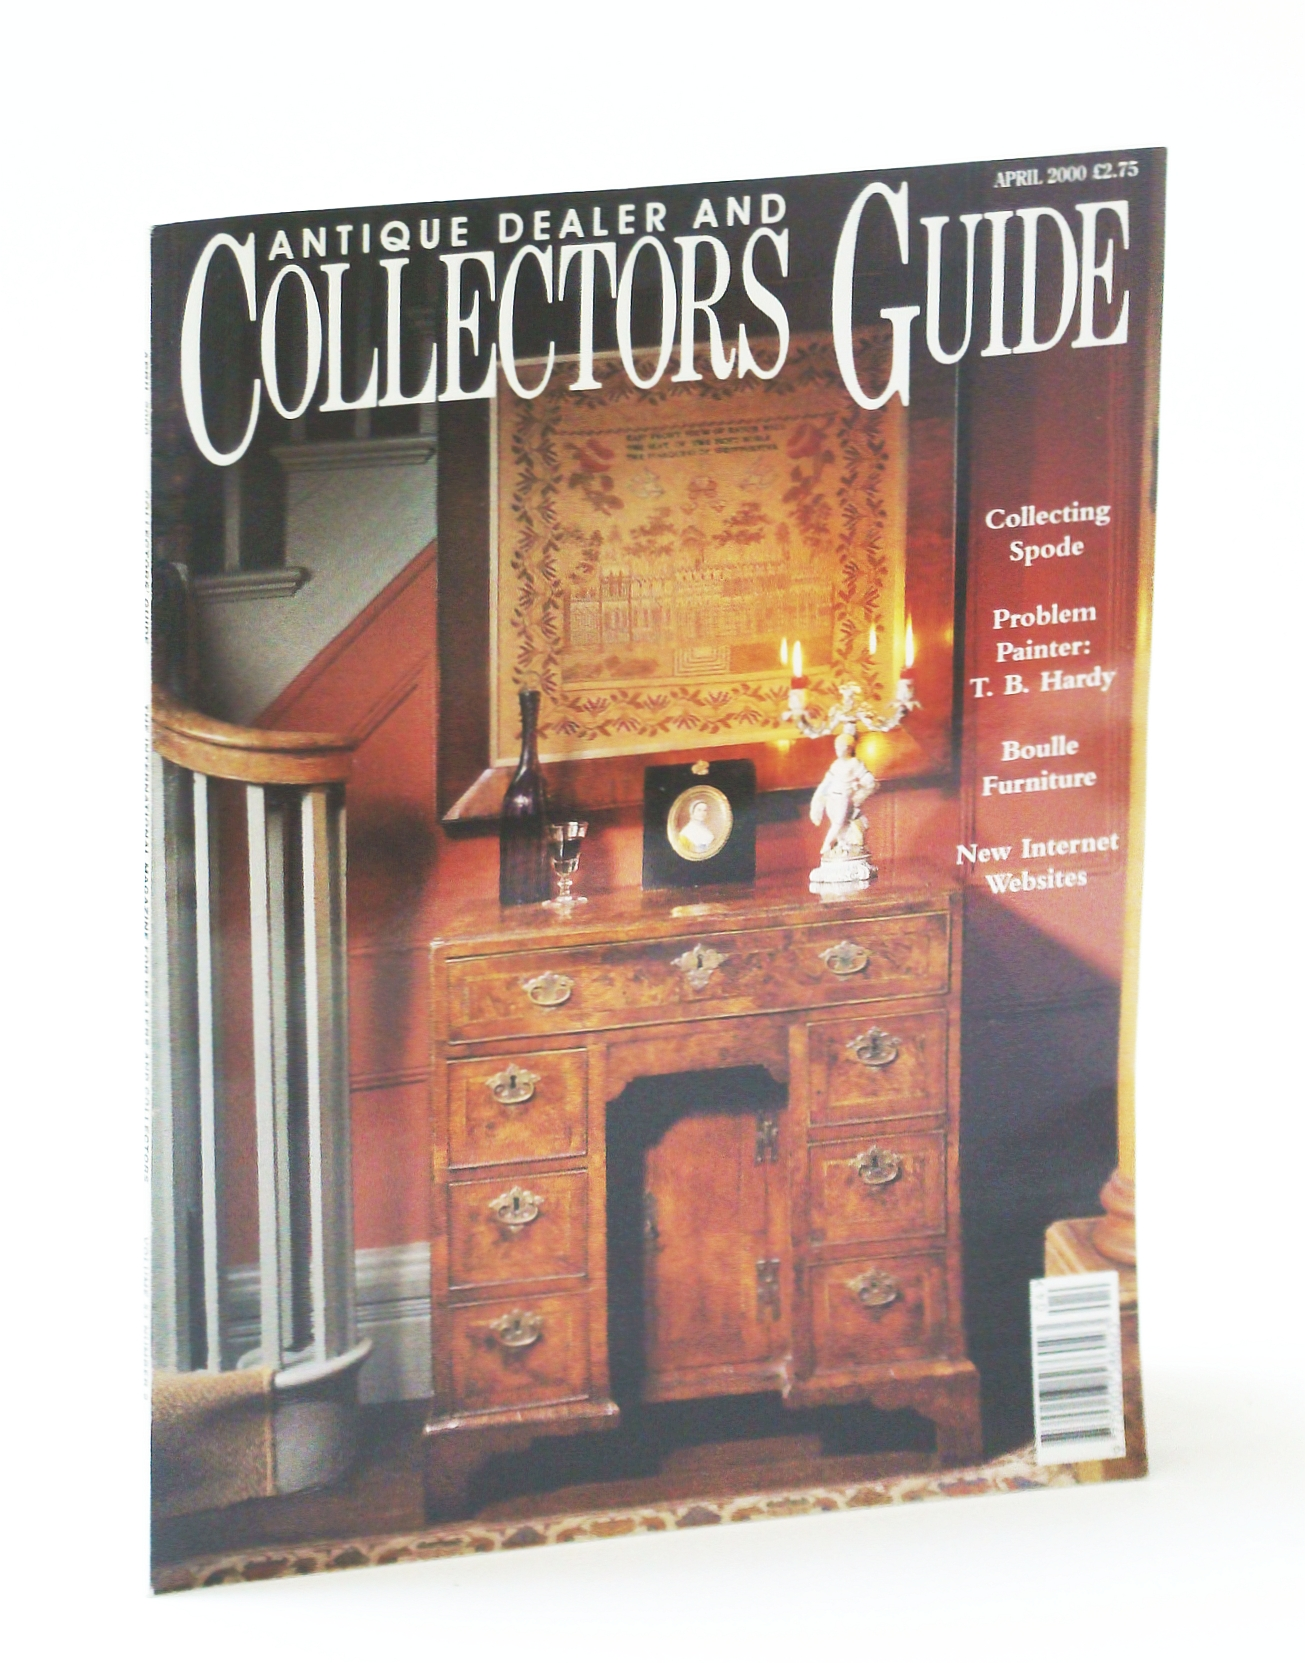 Image for Antique Dealer and Collectors Guide Magazine, April (Apr.) 2000 - Buhl in Bath and Boulle Abroad / Major Spode Sale